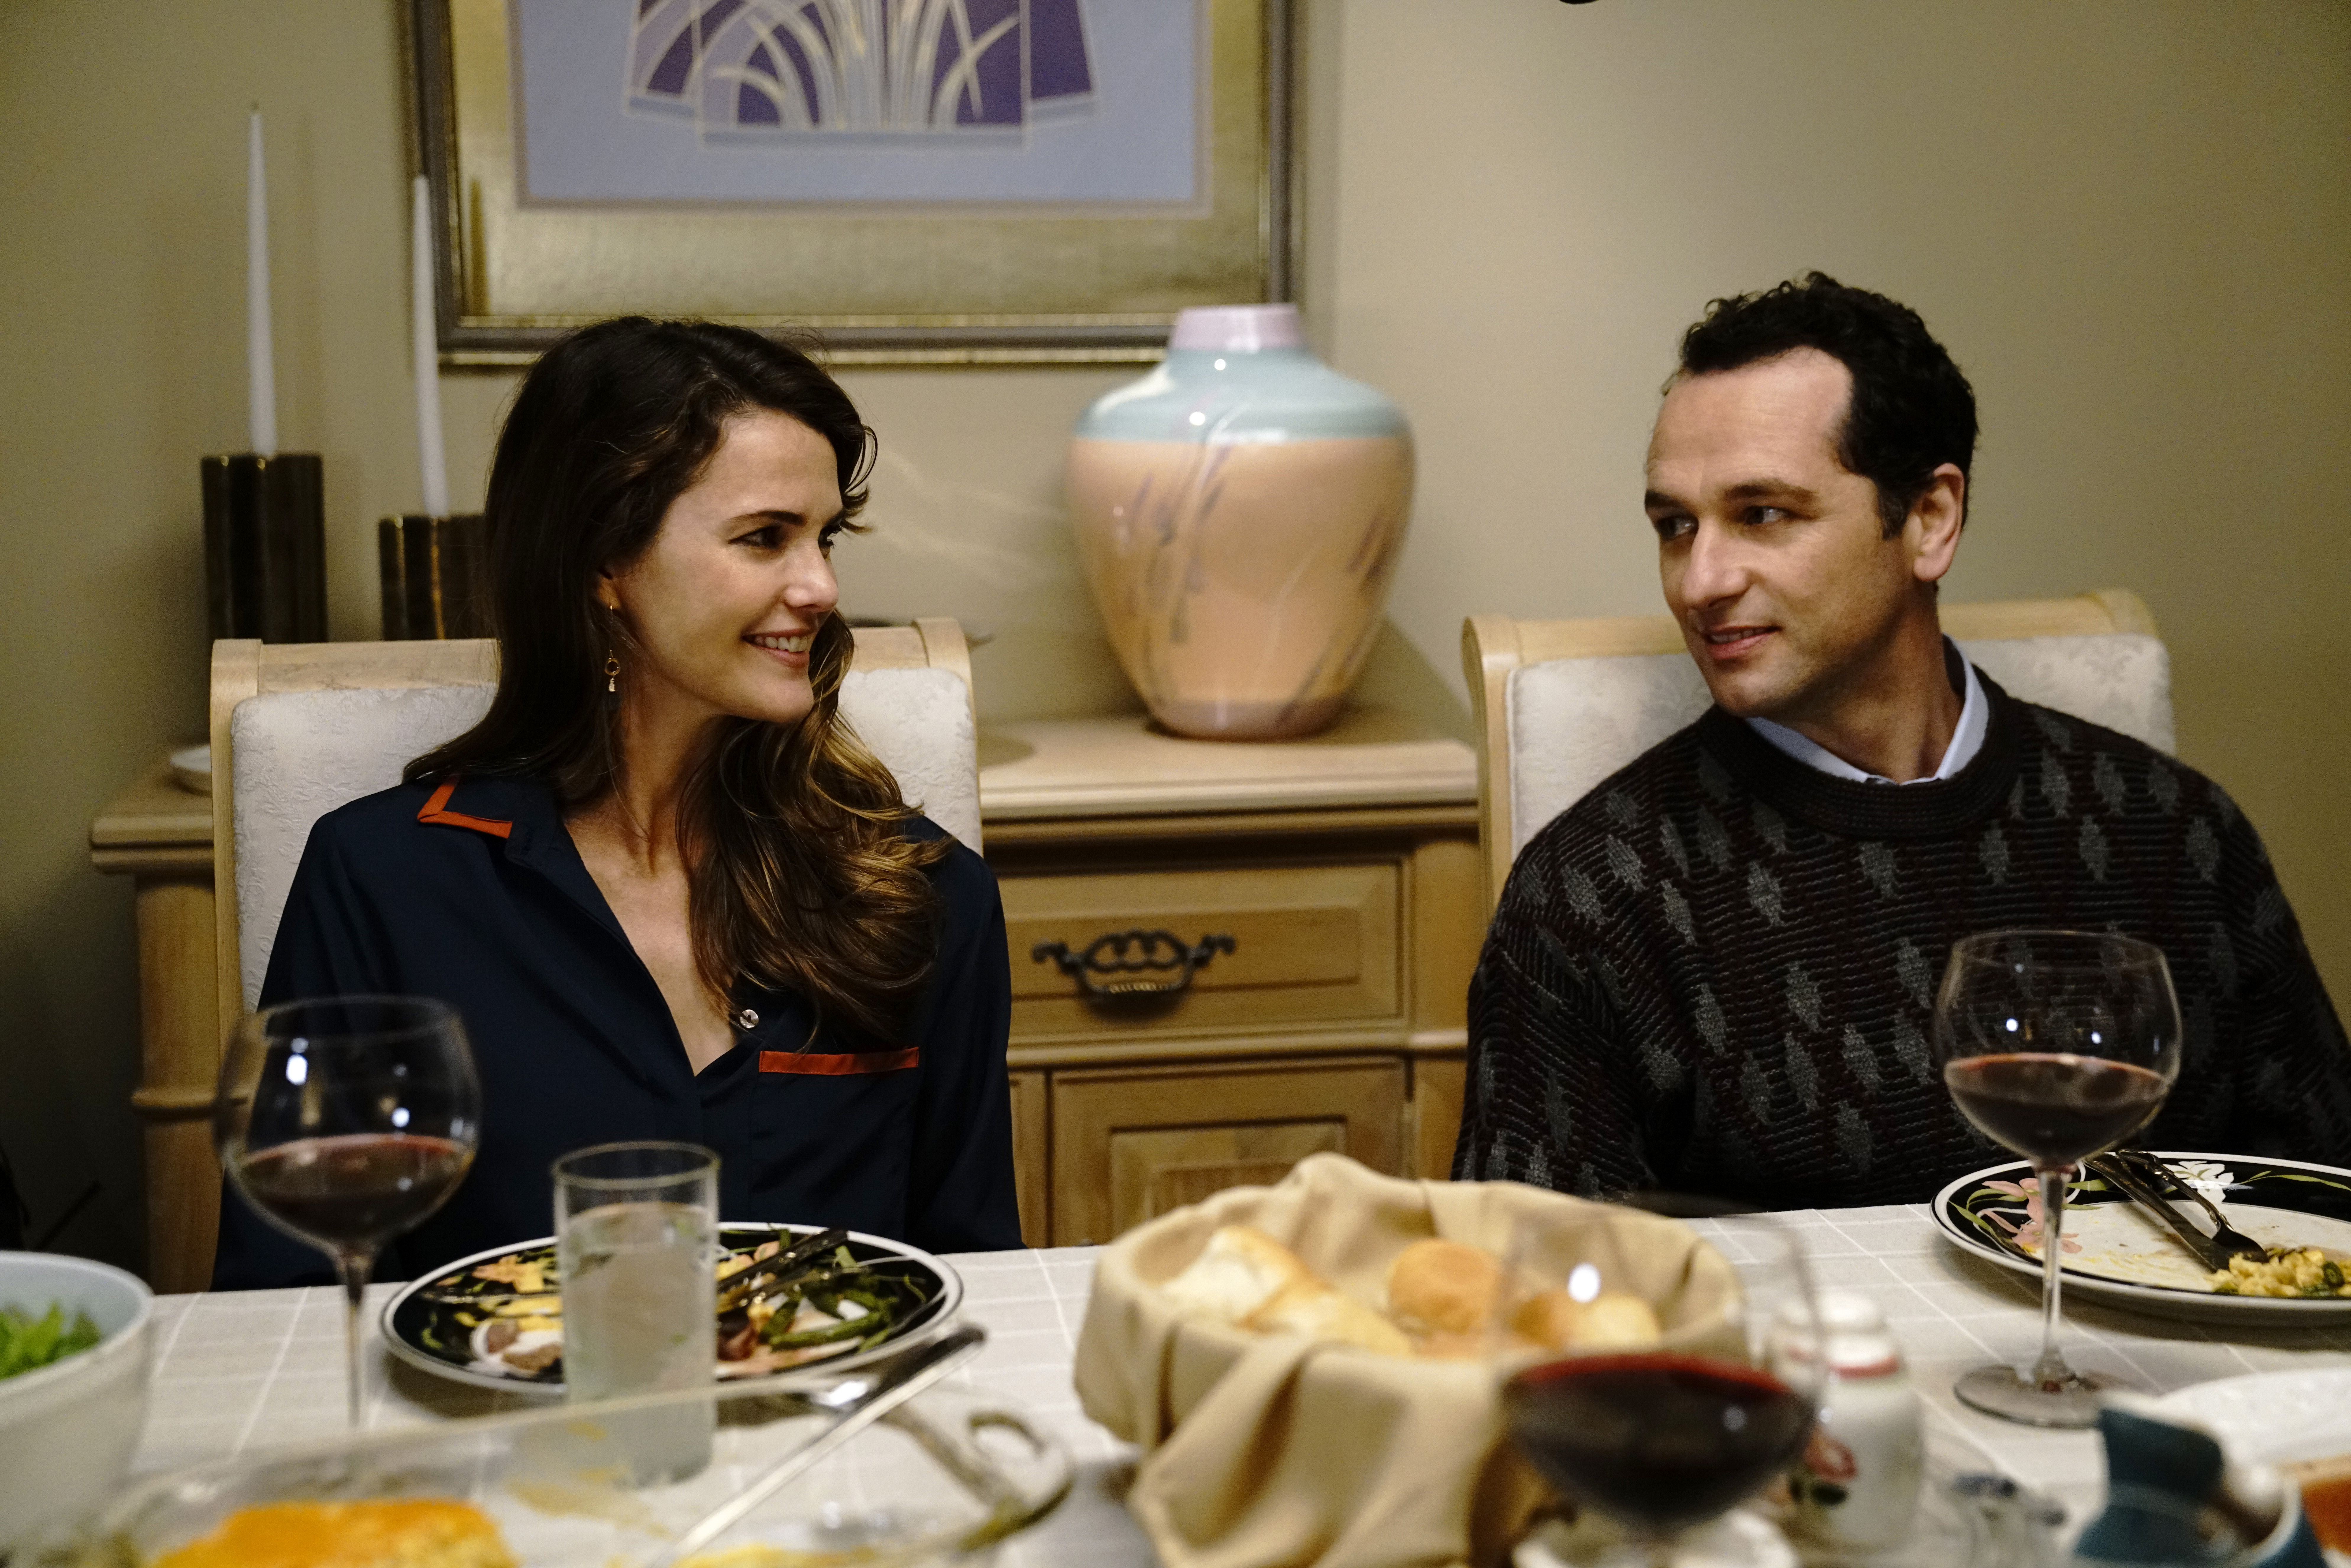 Keri Russell as Elizabeth Jennings, and Matthew Rhys as Philip Jennings in 'The Americans' on FX.